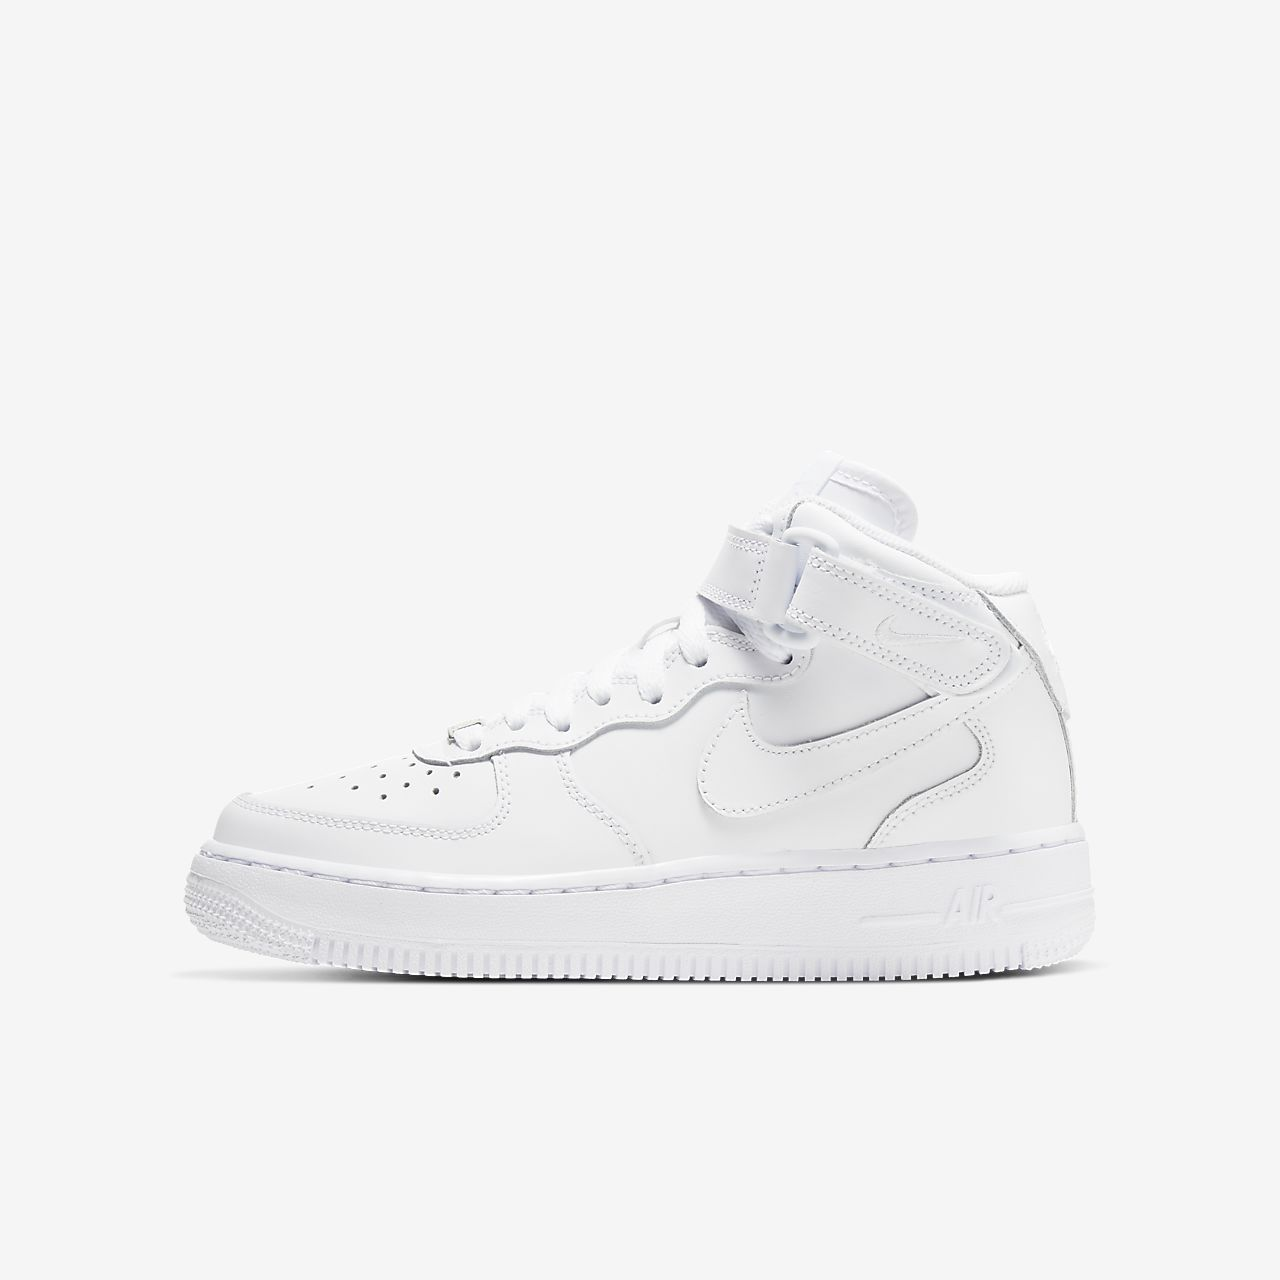 new style 6d9f7 f0c90 ... Nike Air Force 1 Mid 06 Big Kids  Shoe